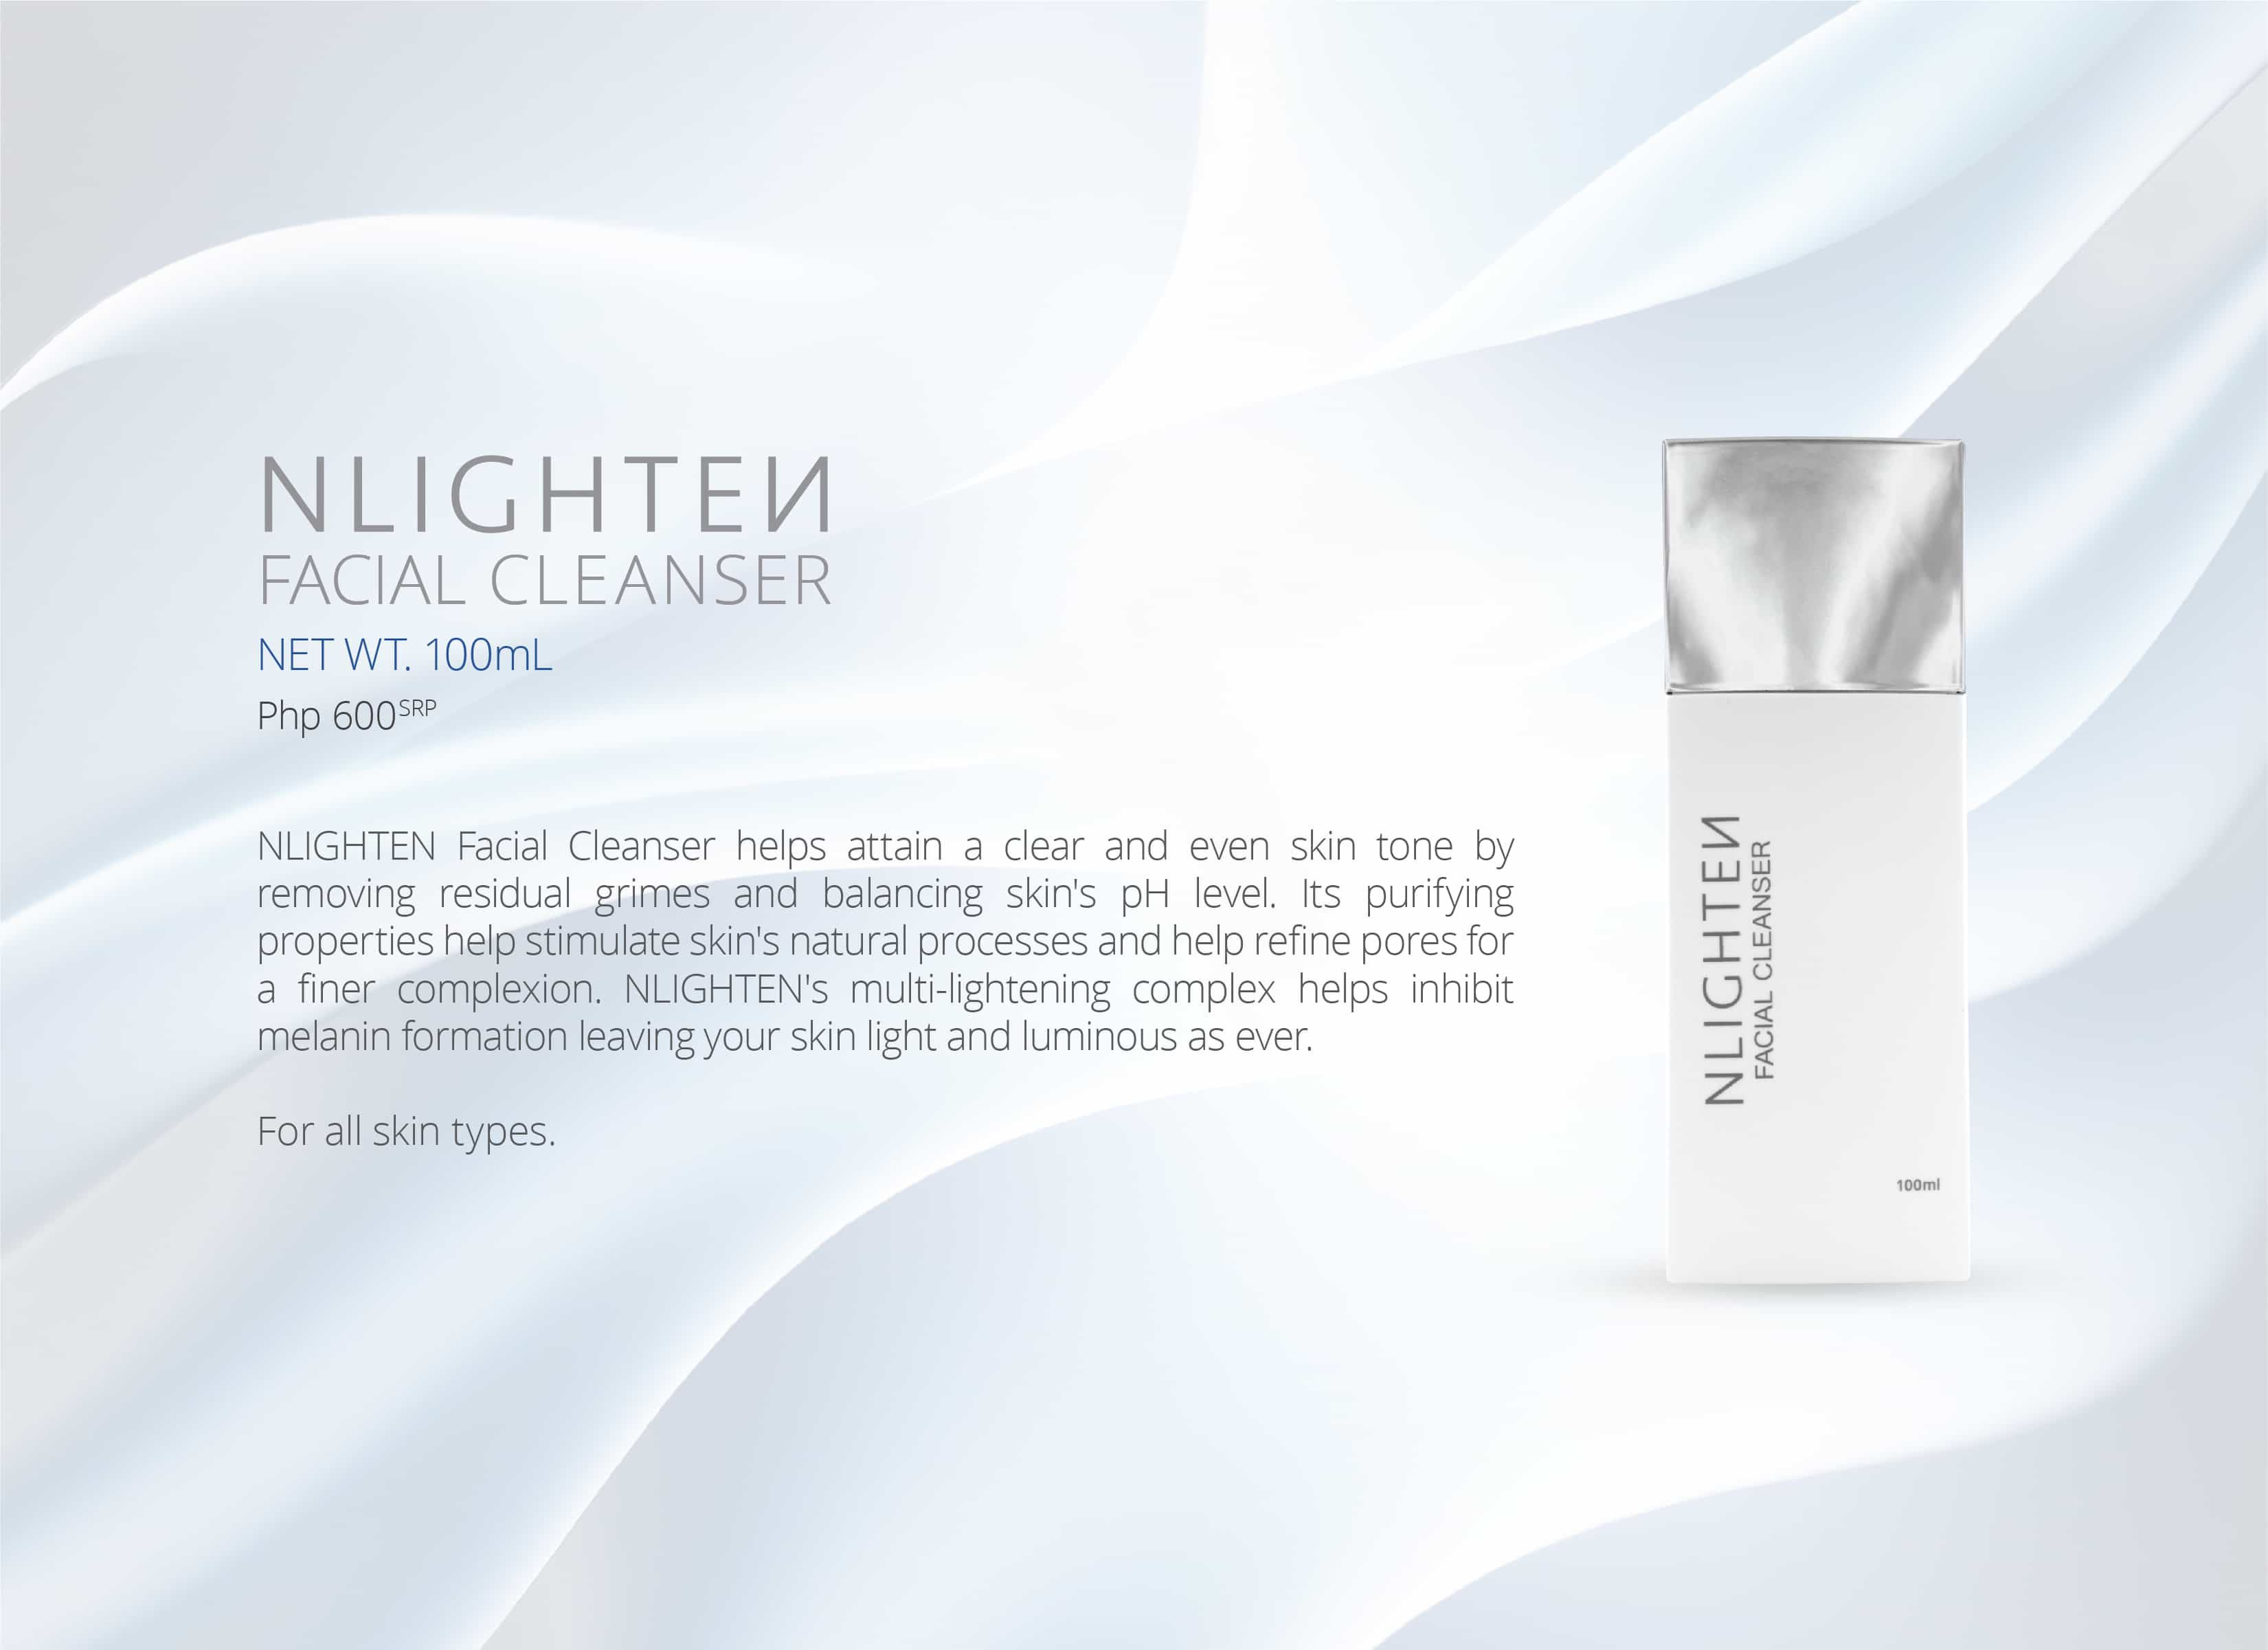 NLIGHTEN Facial Cleanser